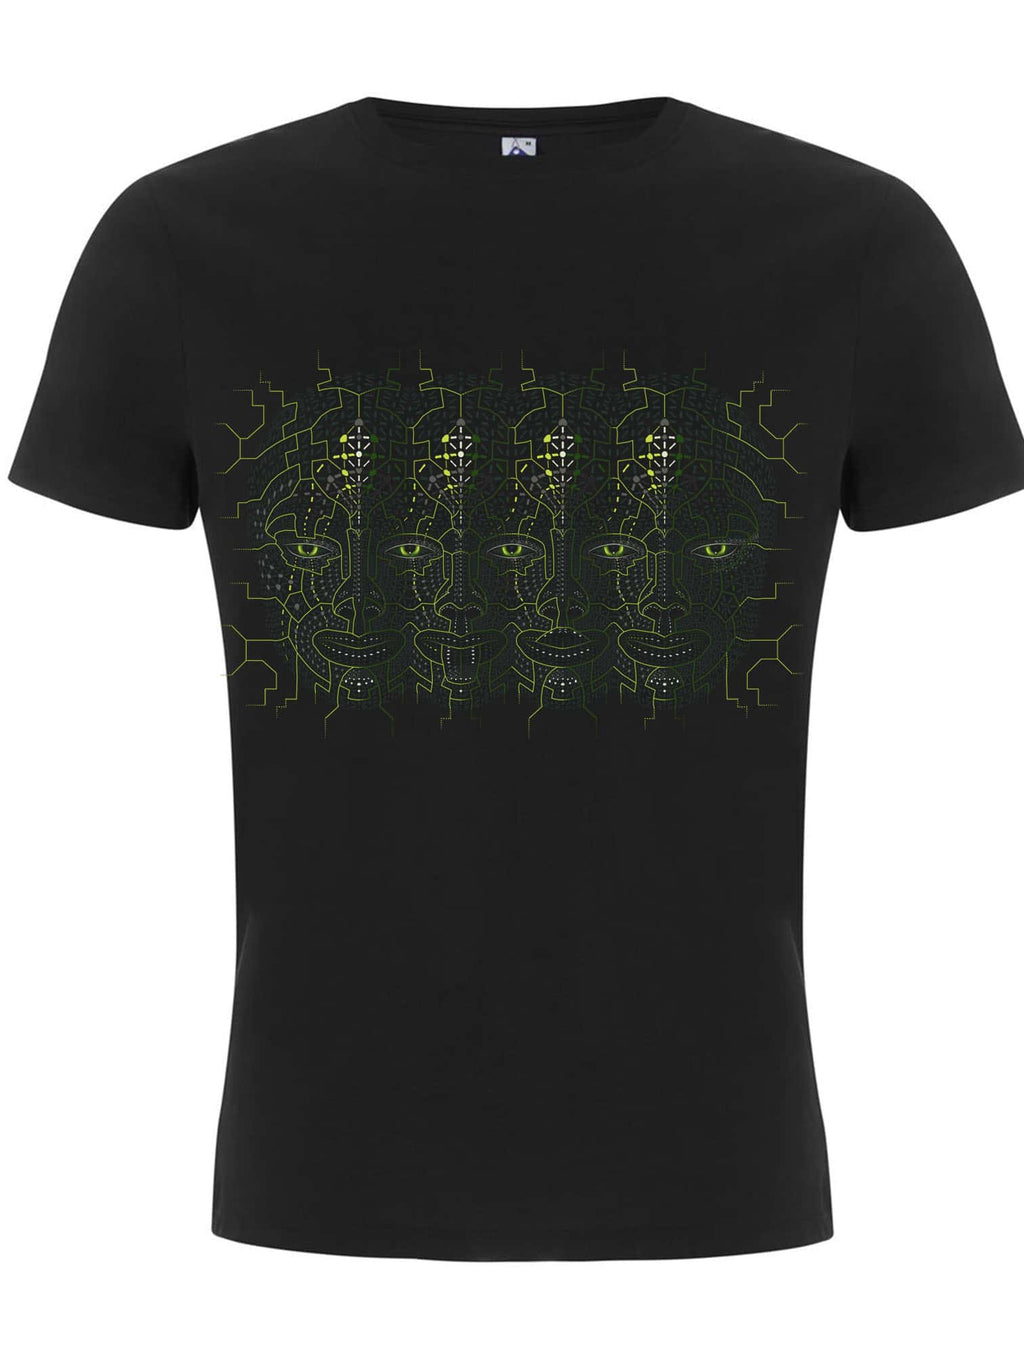 4th Dimension Made To Order Men T-Shirt - Black